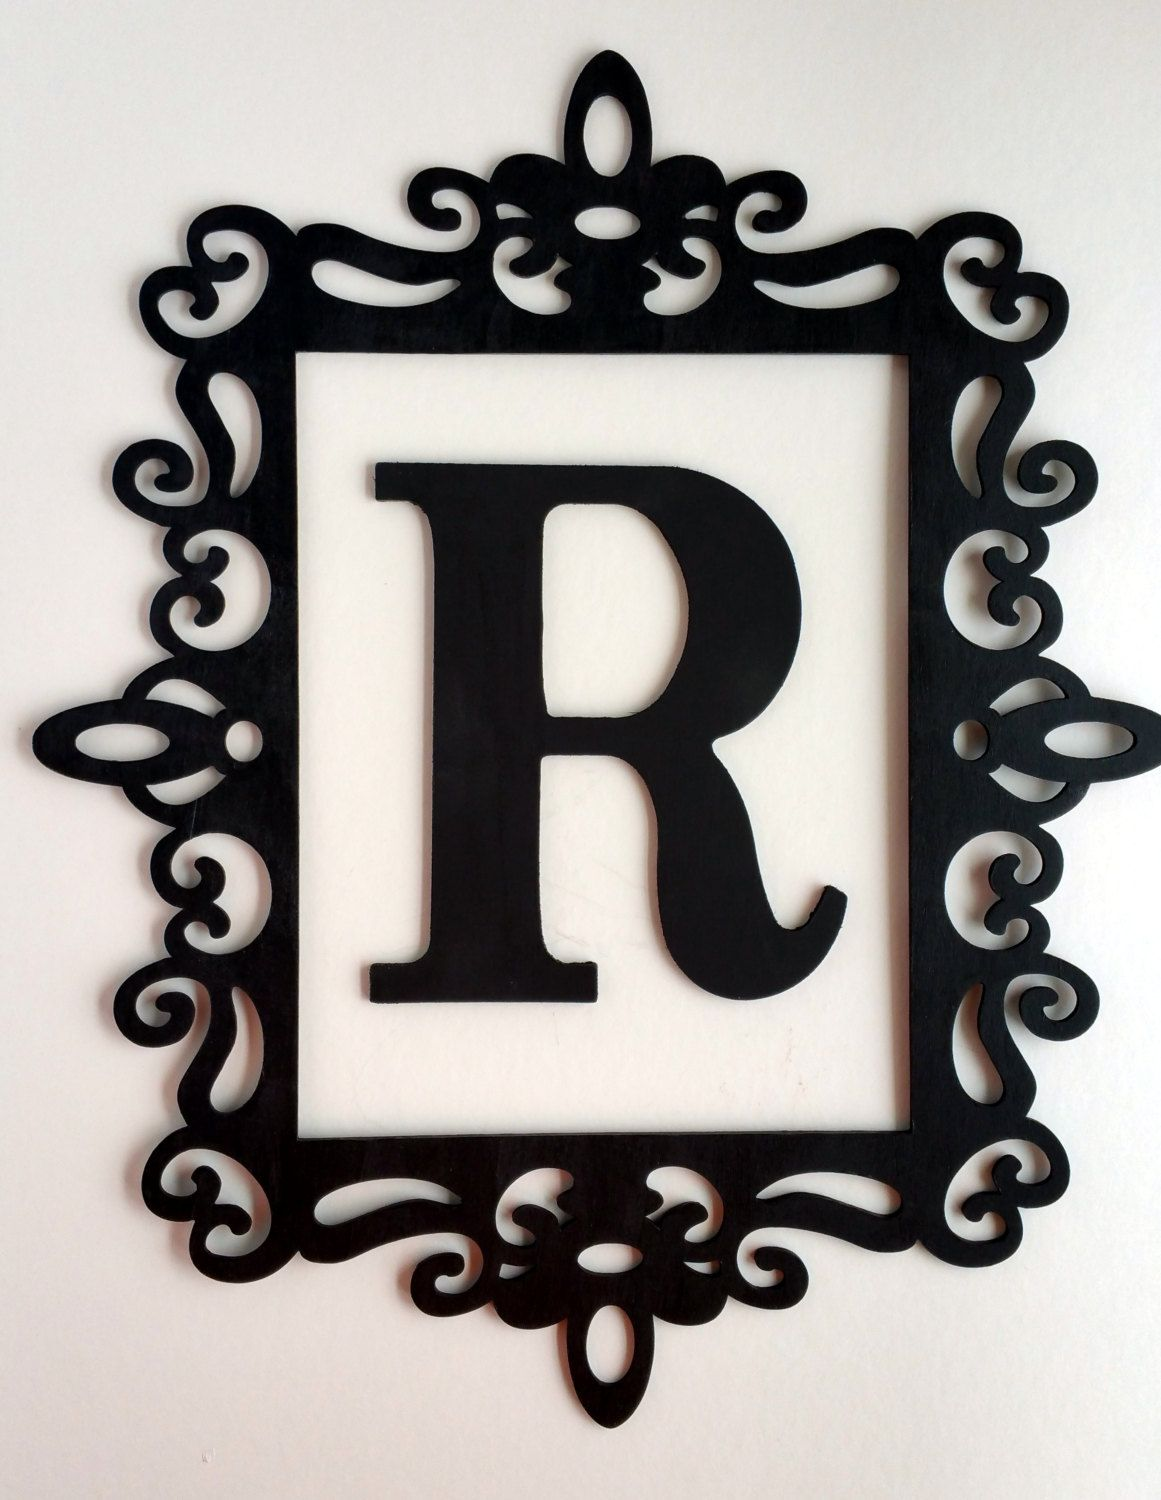 Black Ornate Frame   Large Letter Wall Decor   Framed Initial   Laser Cut  Frame